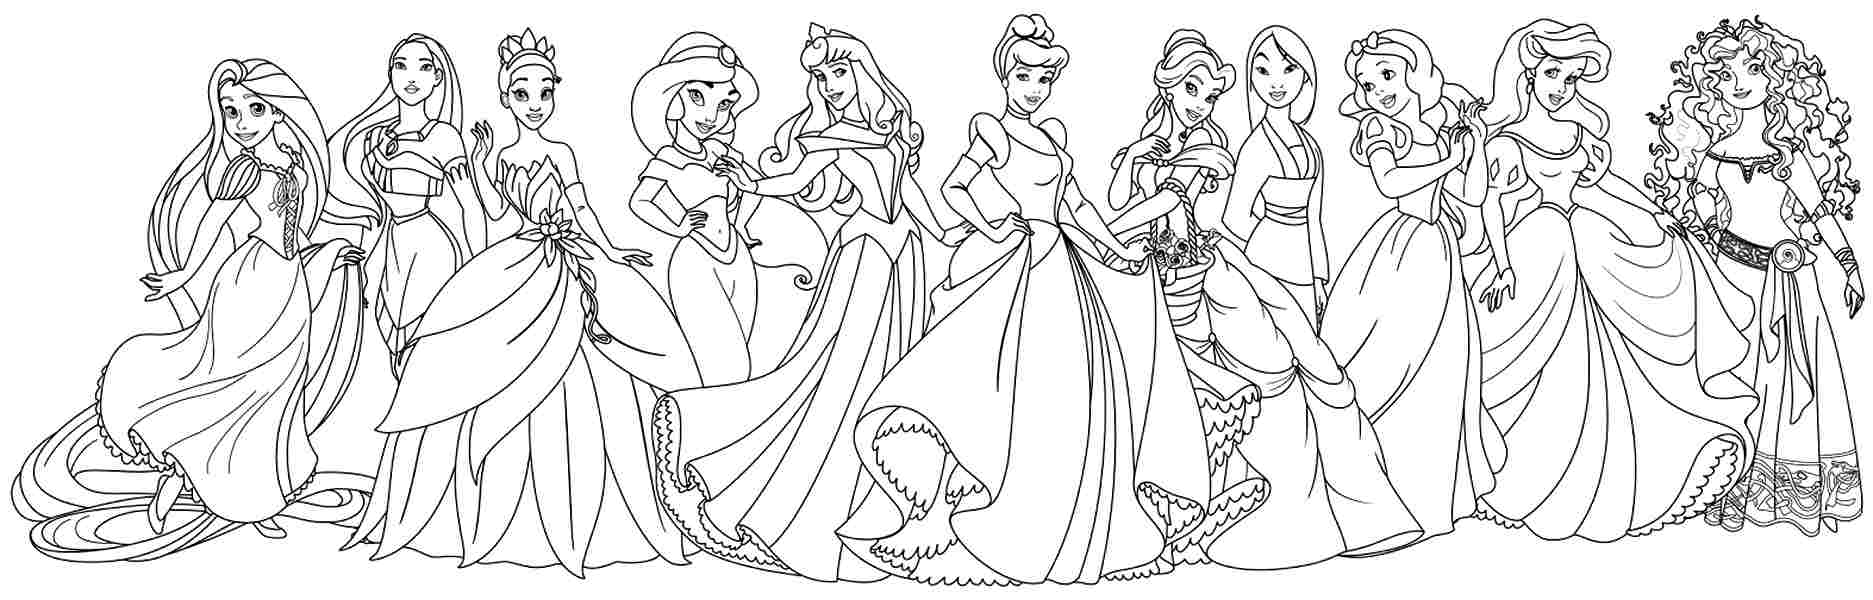 All Princess Together Coloring Pages Coloring Pages For All Ages